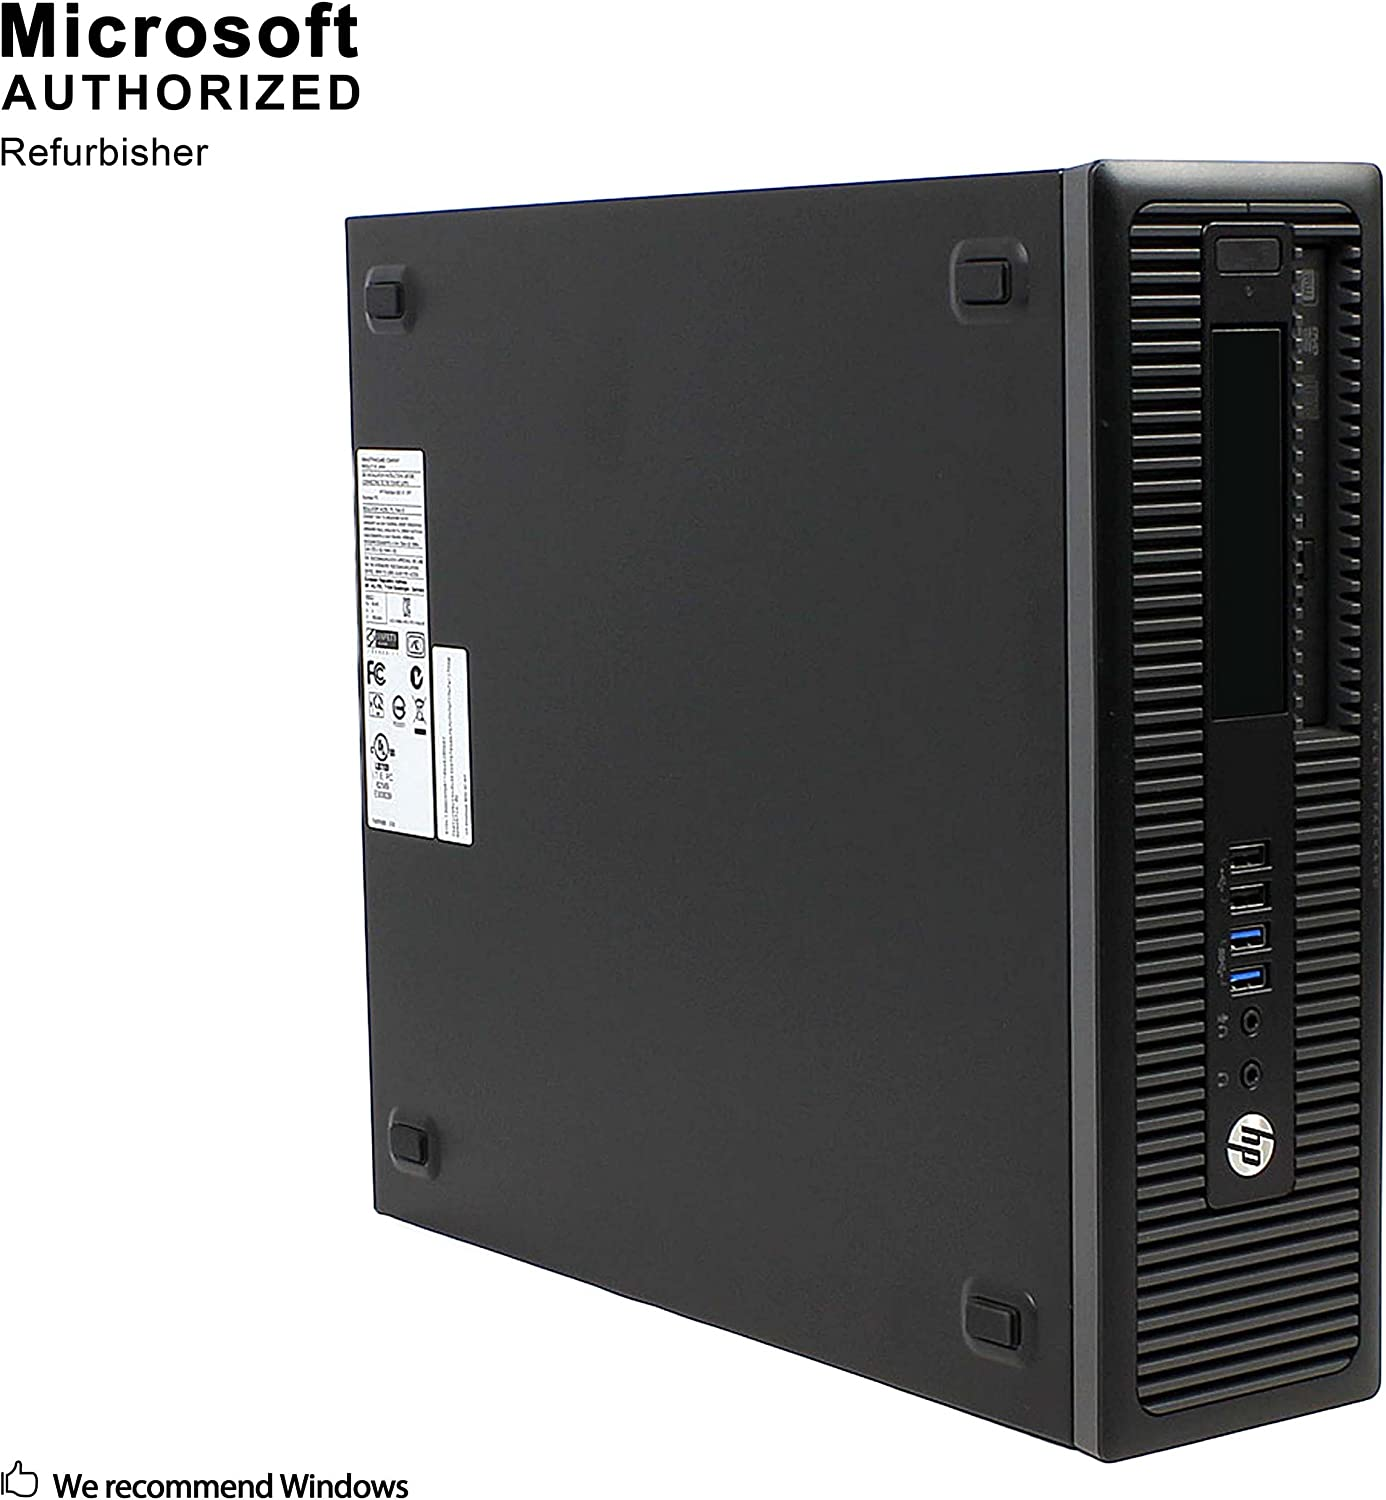 HP ProDesk 600 G2 Small Form Factor PC, Intel Quad Core i7-6700 up to 4.0GHz, 16G DDR4, 1T SSD, WiFi, Bluetooth 4.0, DVDRW, Windows 10 64-Multi-Language Support English/Spanish/French (Renewed)